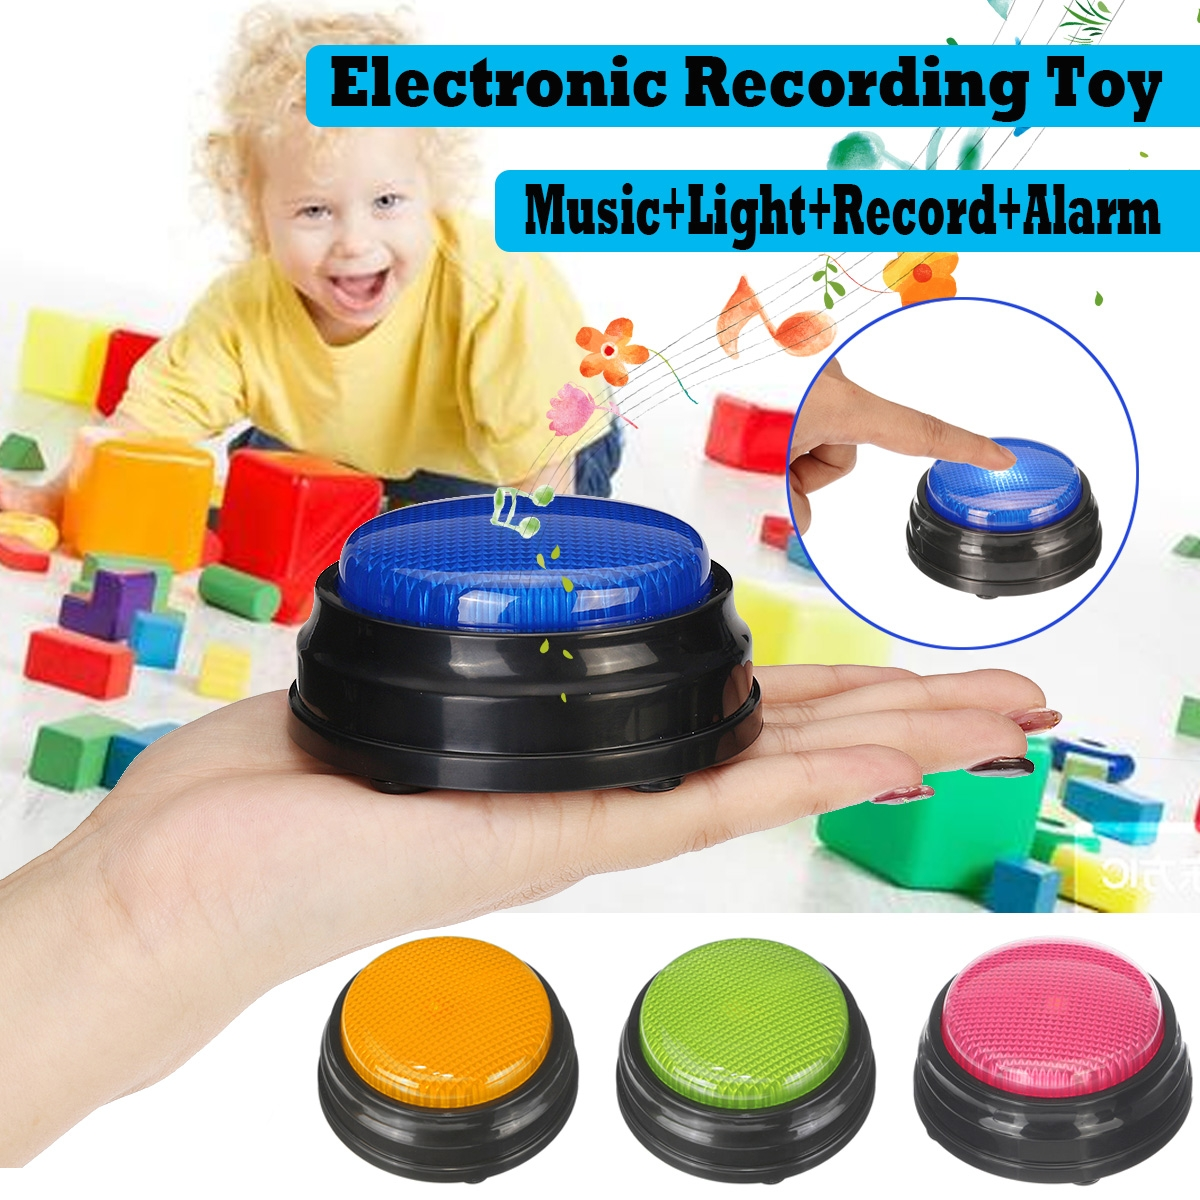 Sound Button Music Sound Buzzer with Light Recordable Talking Button for H7T8